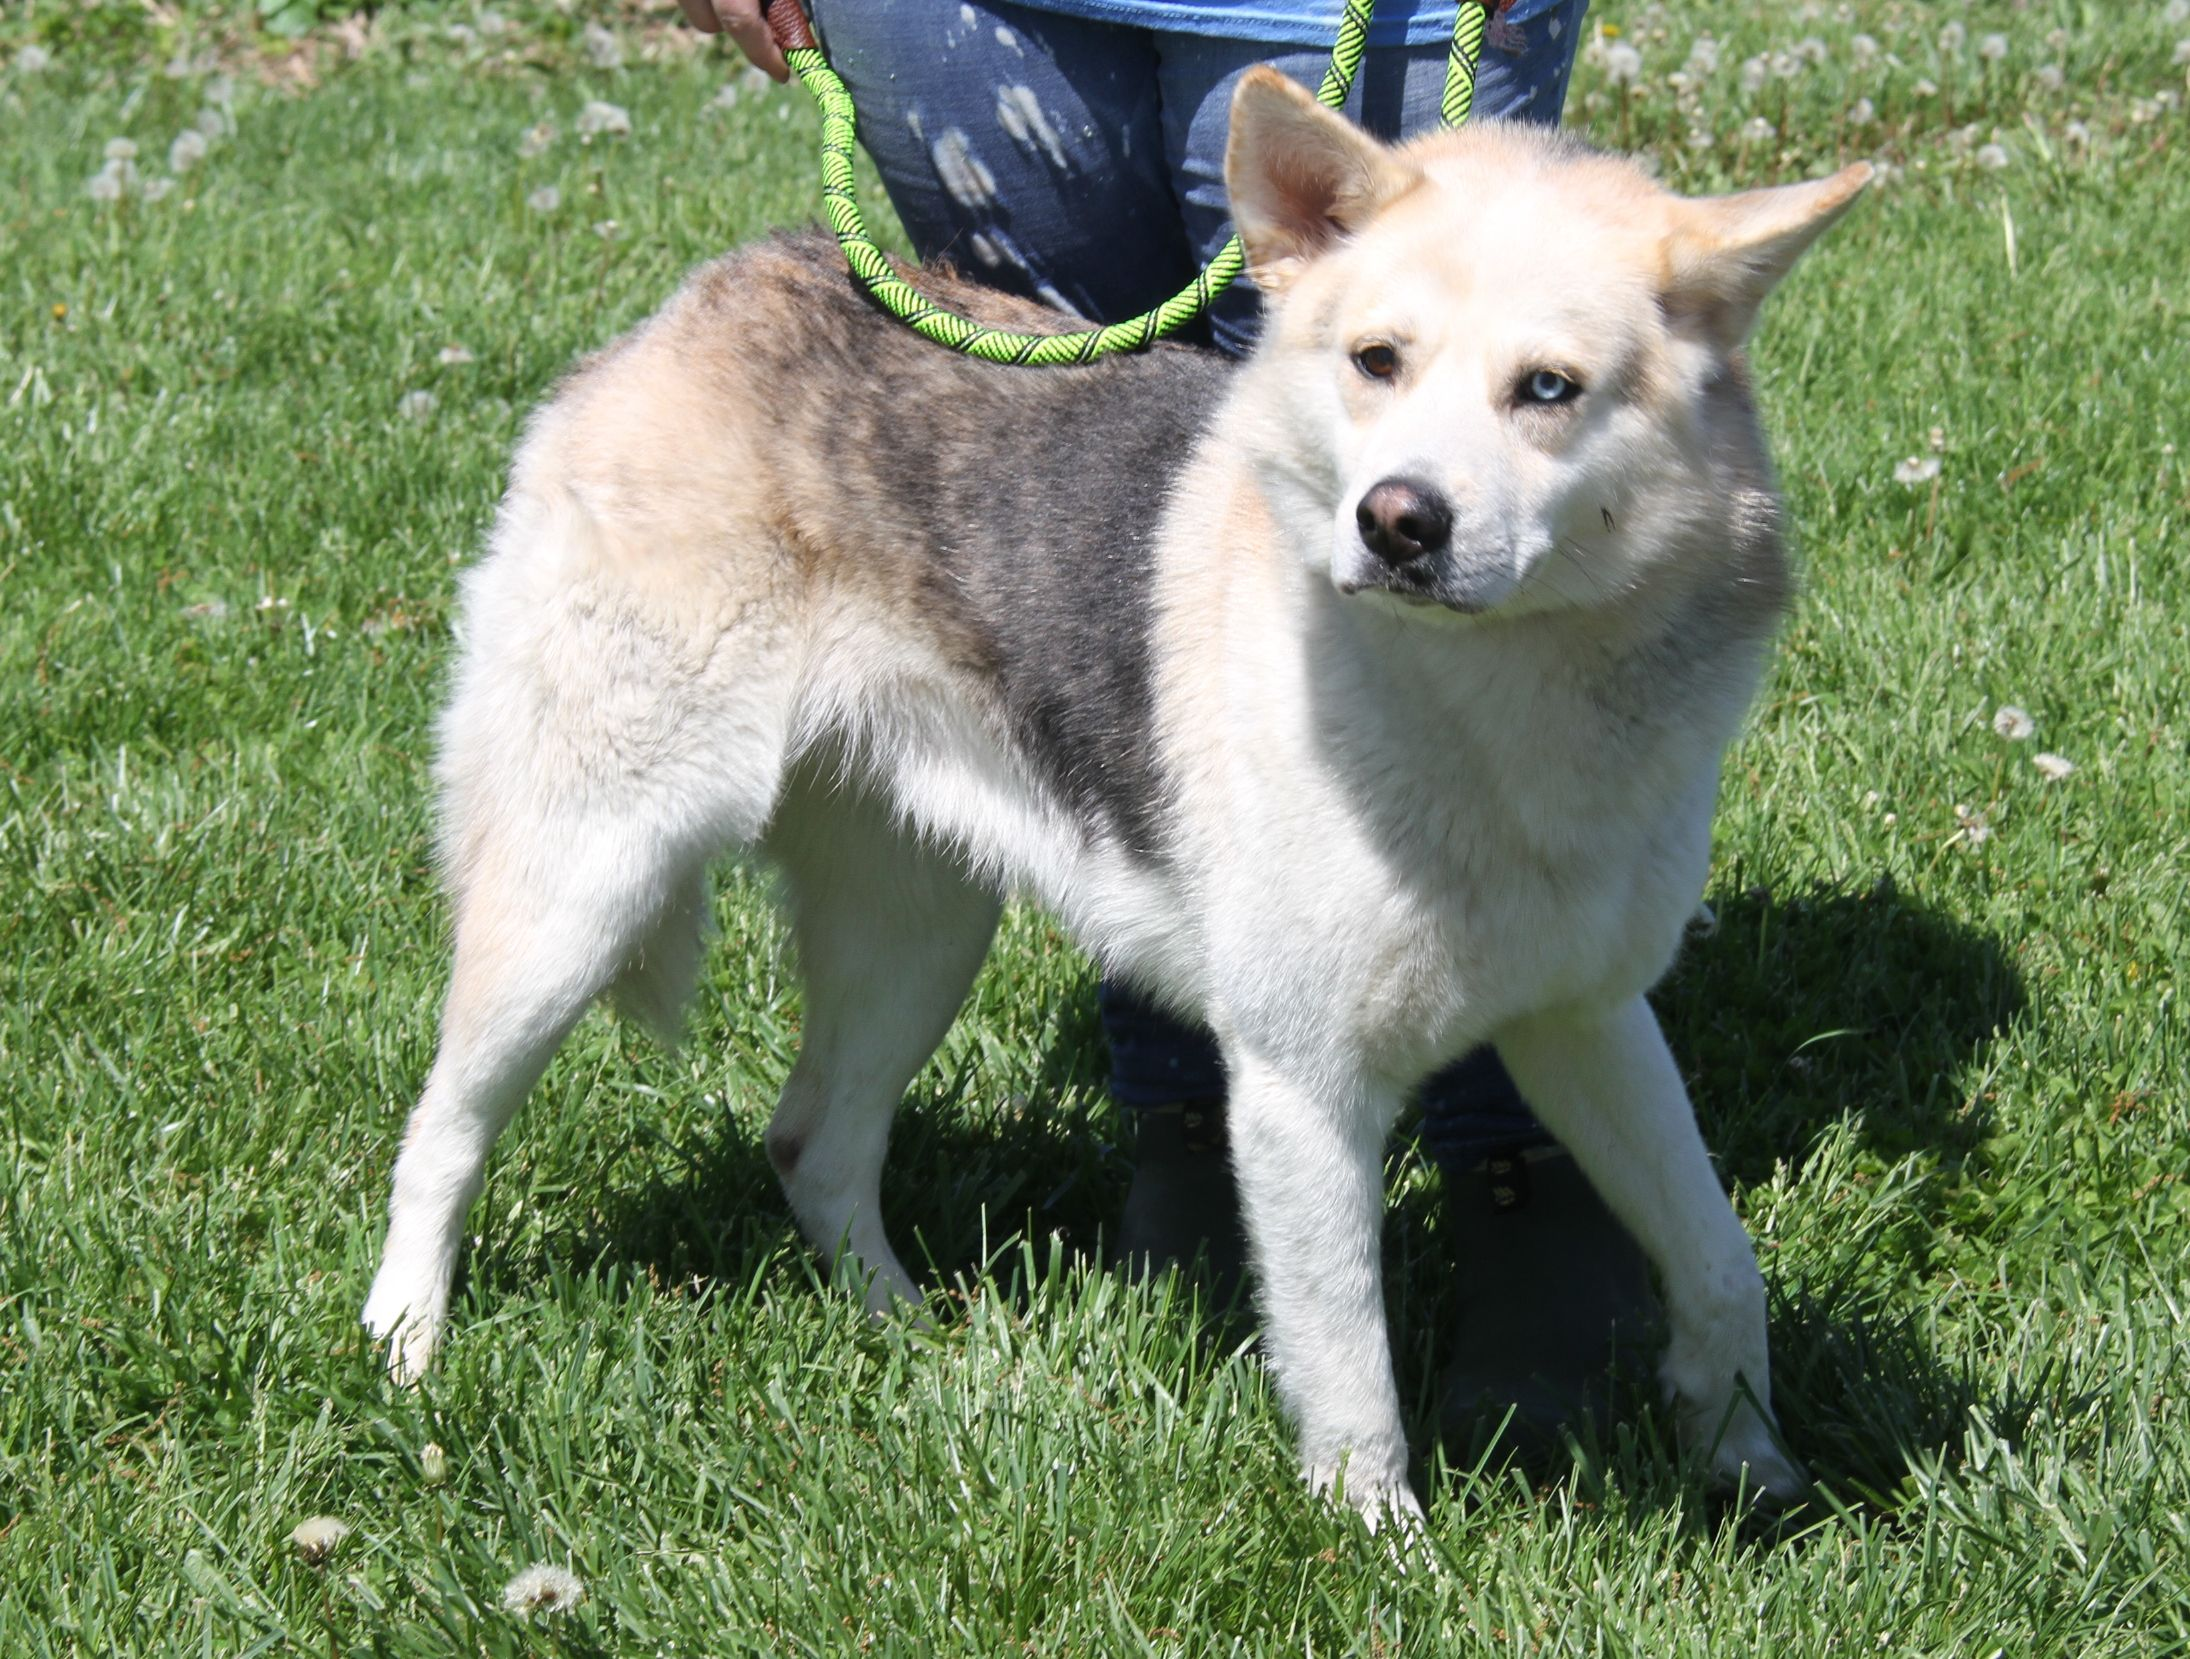 Clark is an adoptable husky searching for a forever family